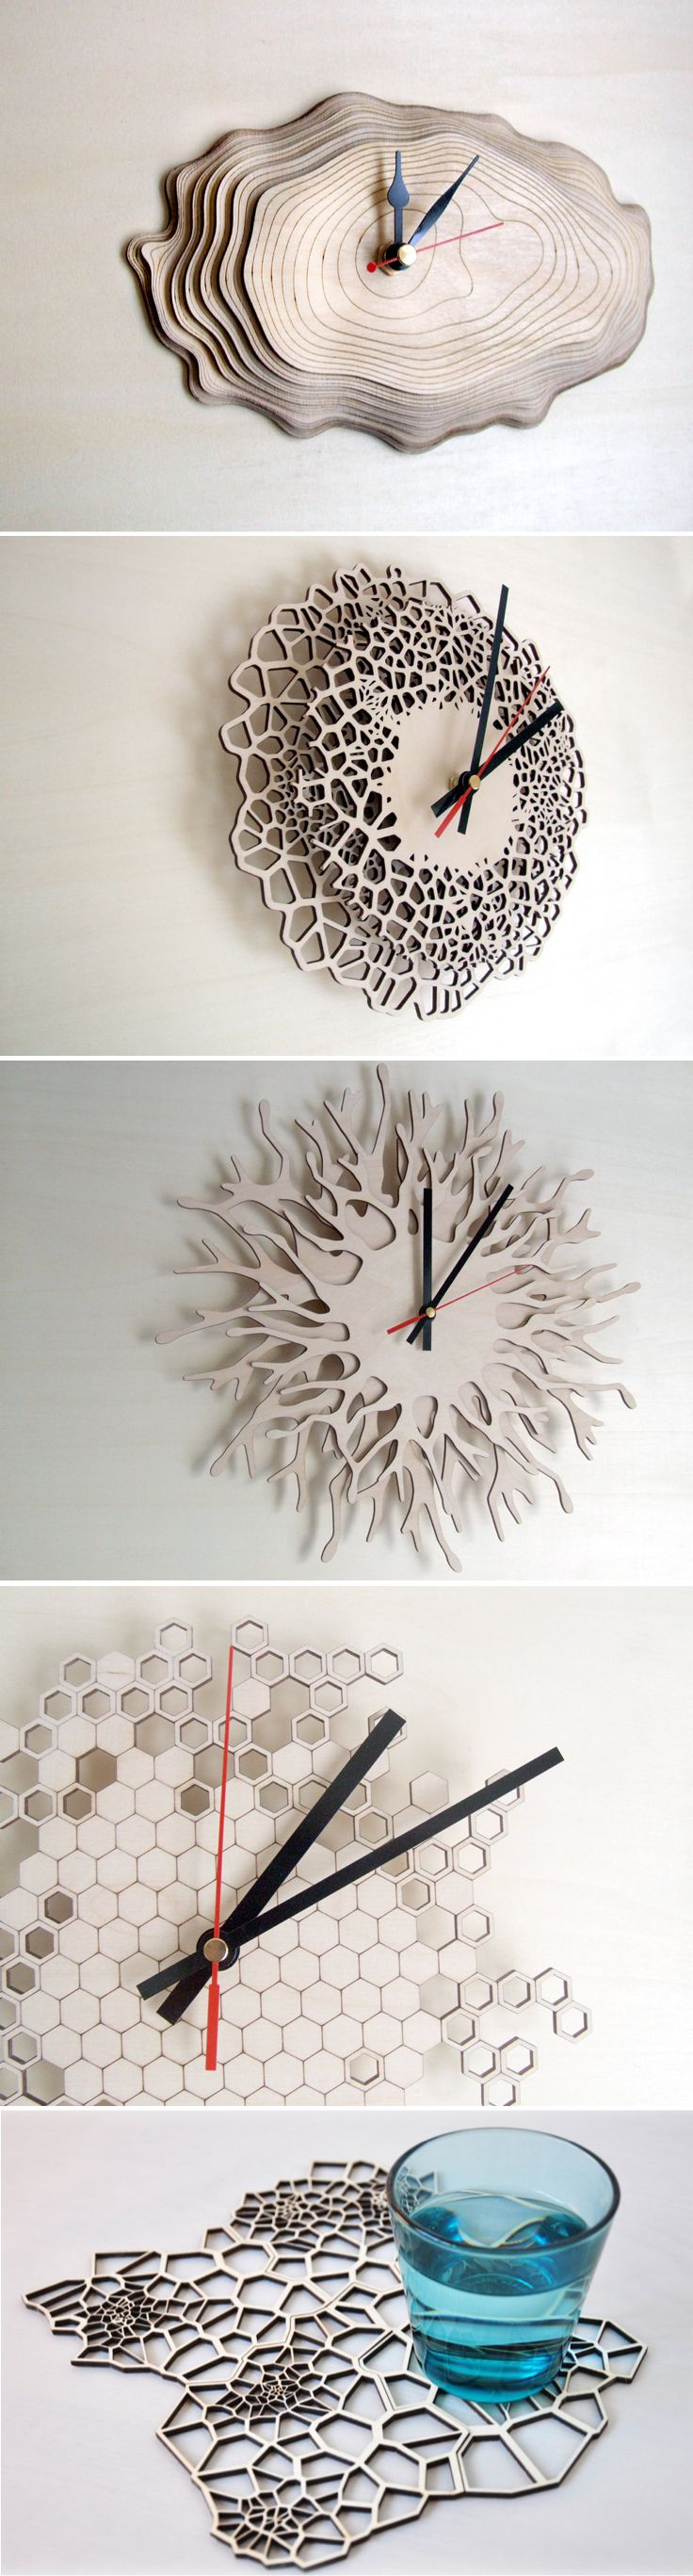 Asymmetree Nature-Inspired Wood Clocks